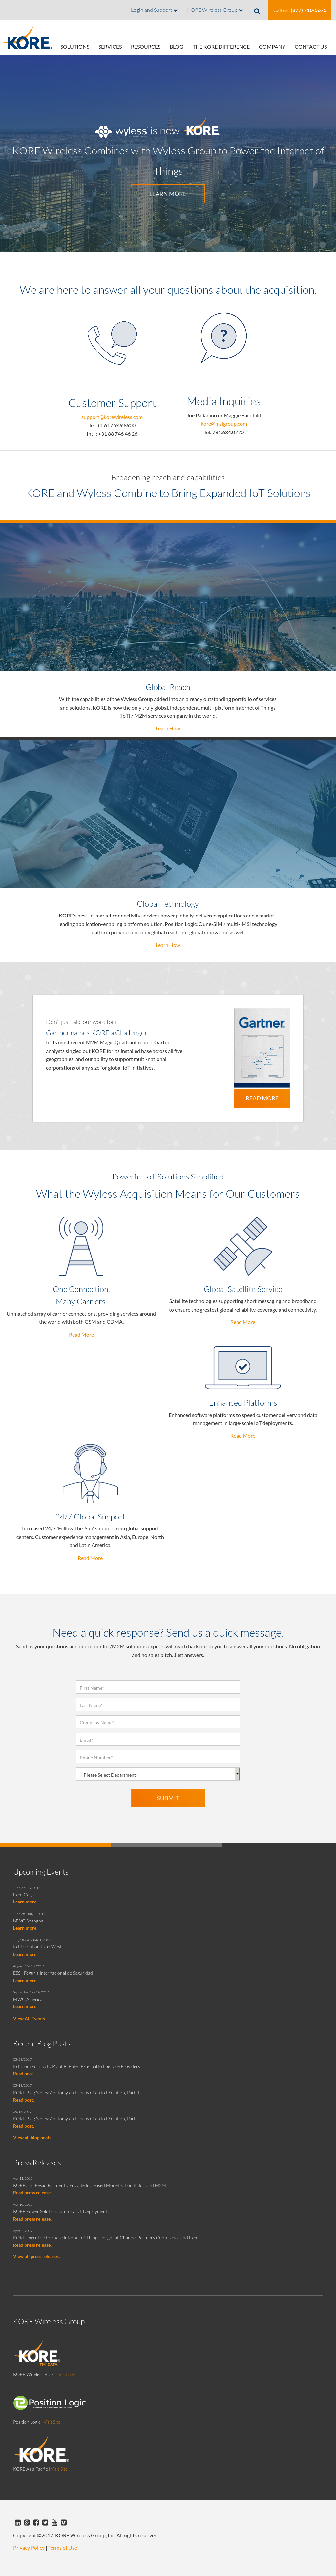 Owler Reports - Press Release: Wyless : KORE Wireless Group ...